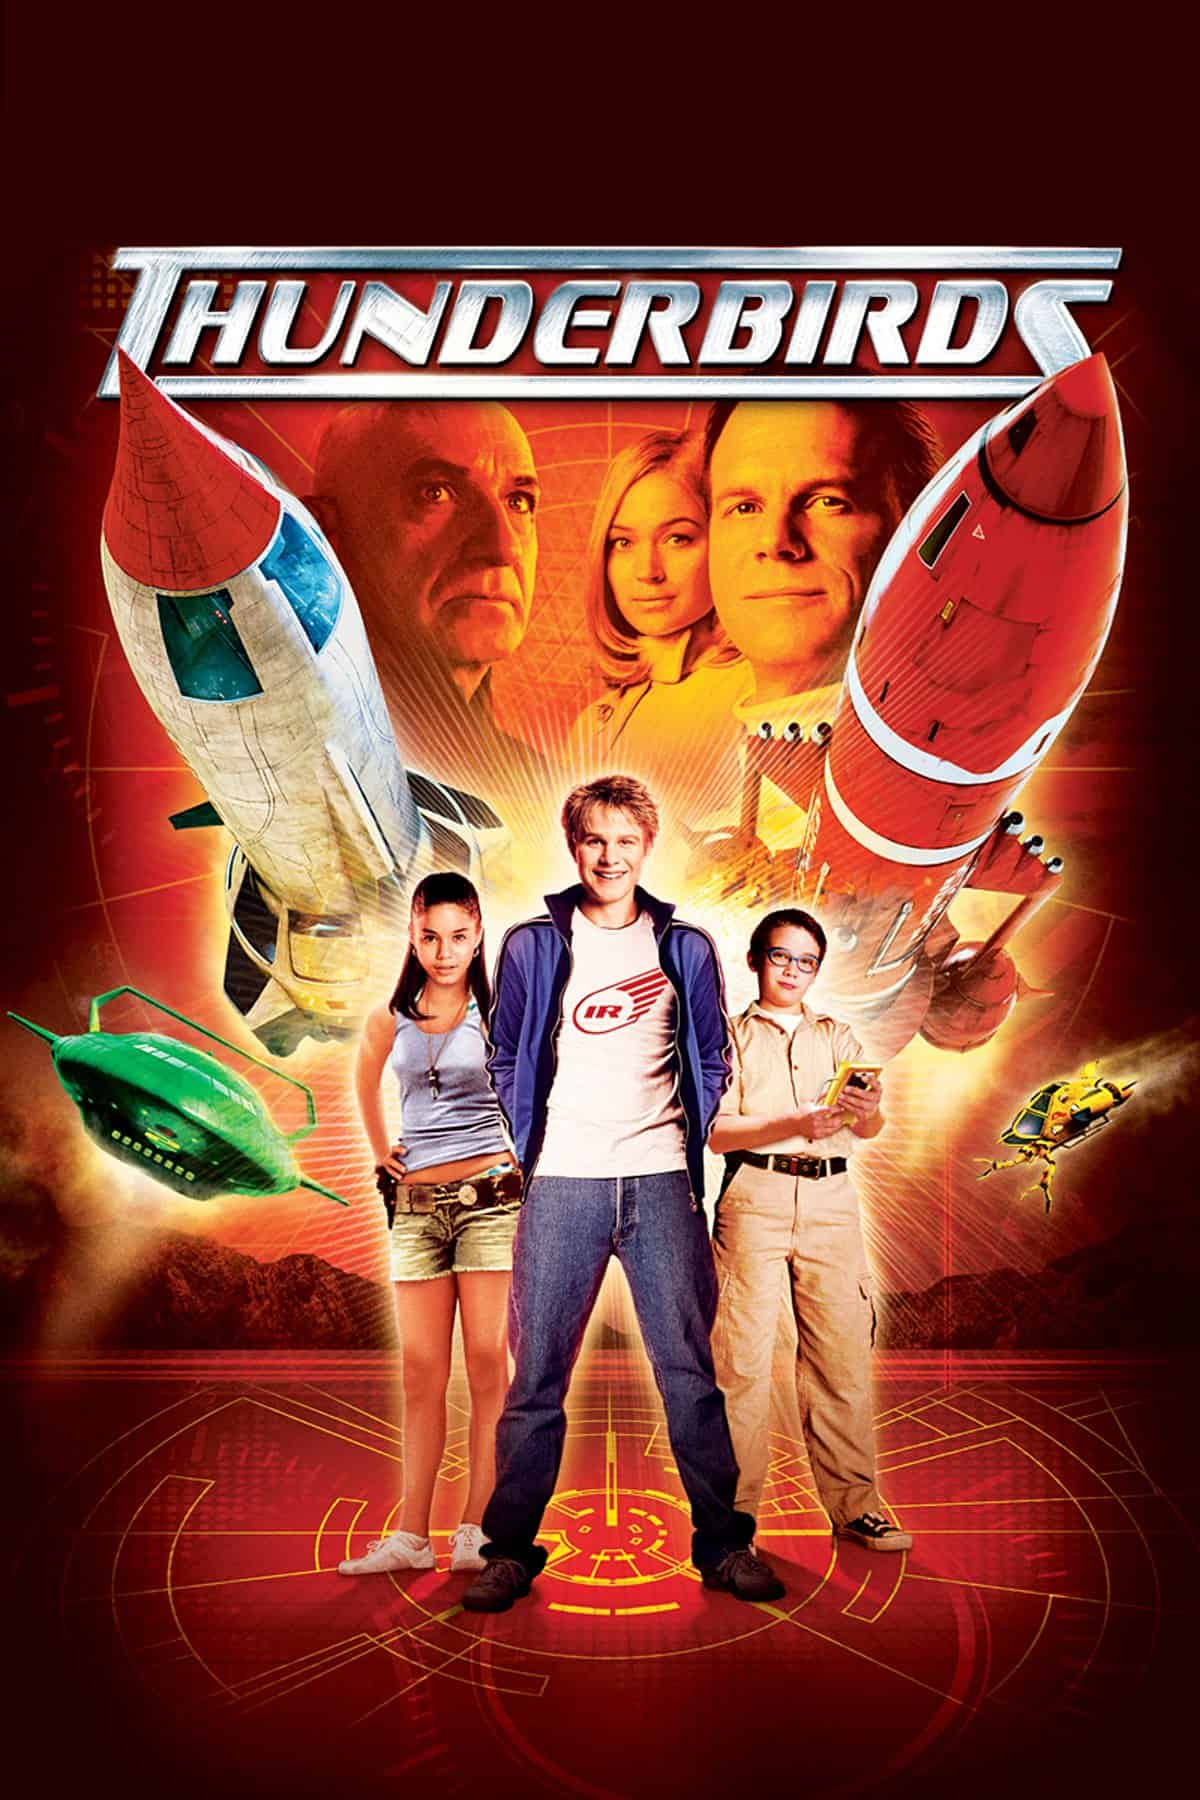 Thunderbirds, 2004